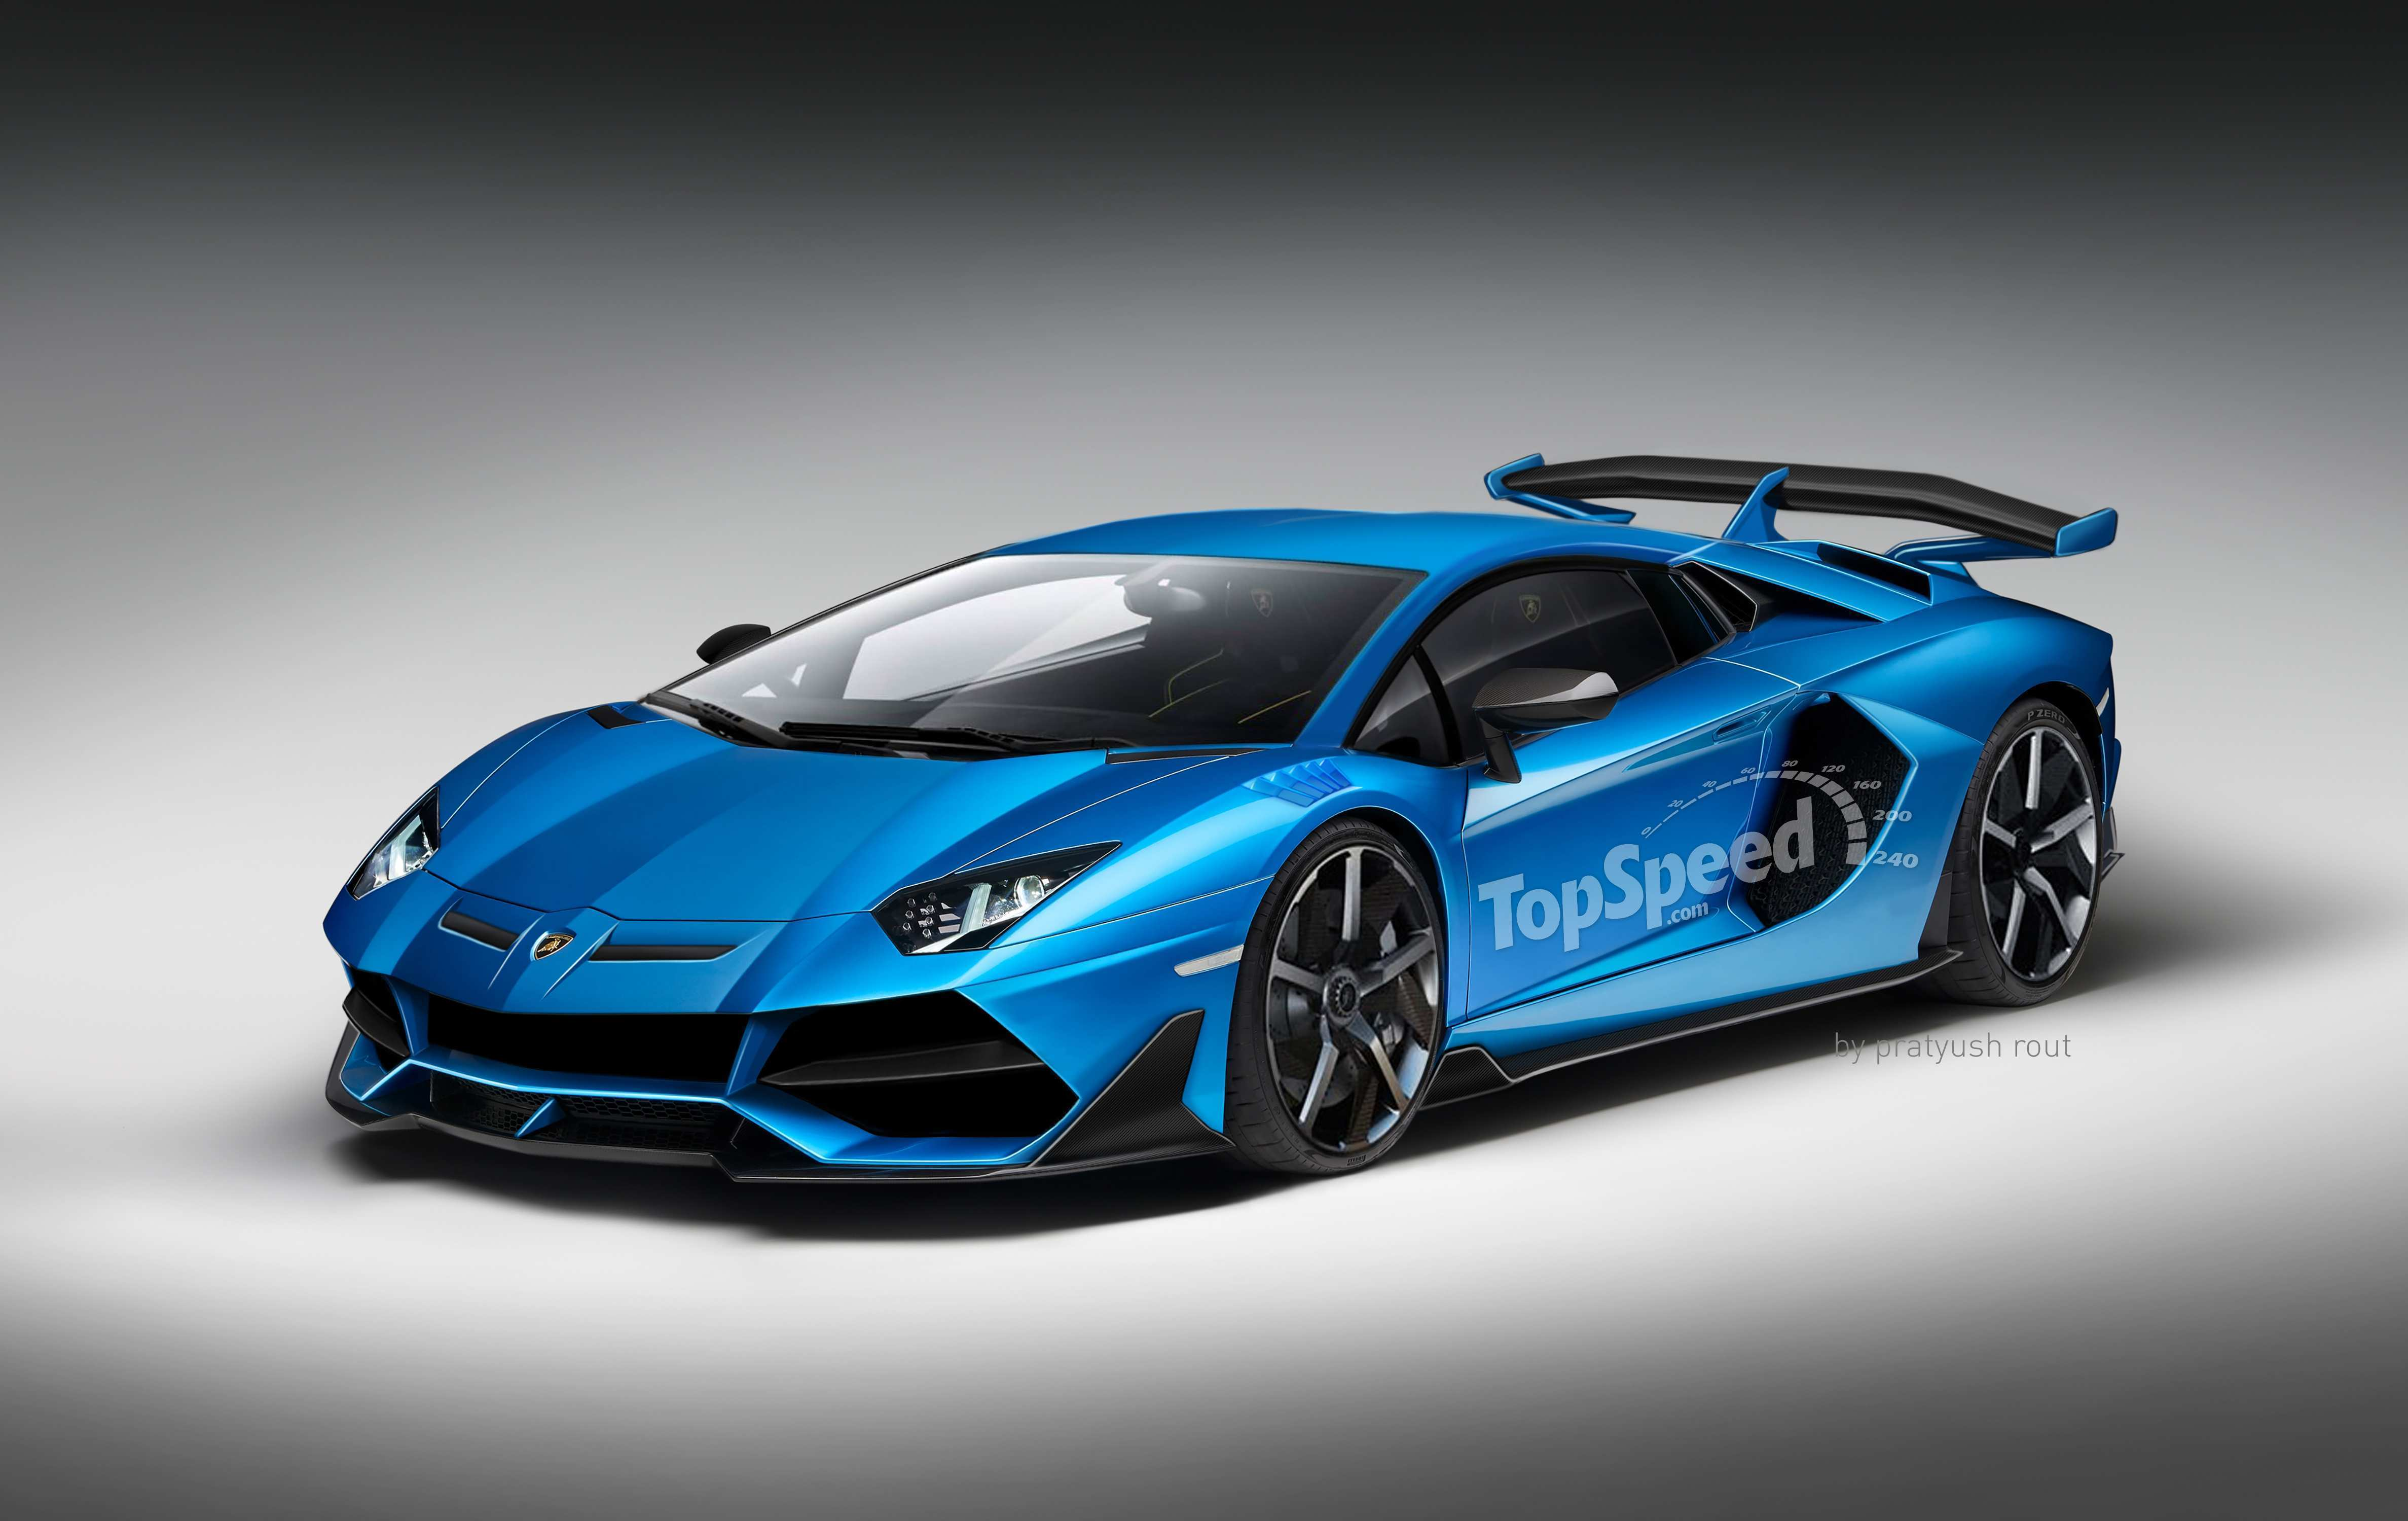 30 New 2020 Lamborghini Svj Research New for 2020 Lamborghini Svj